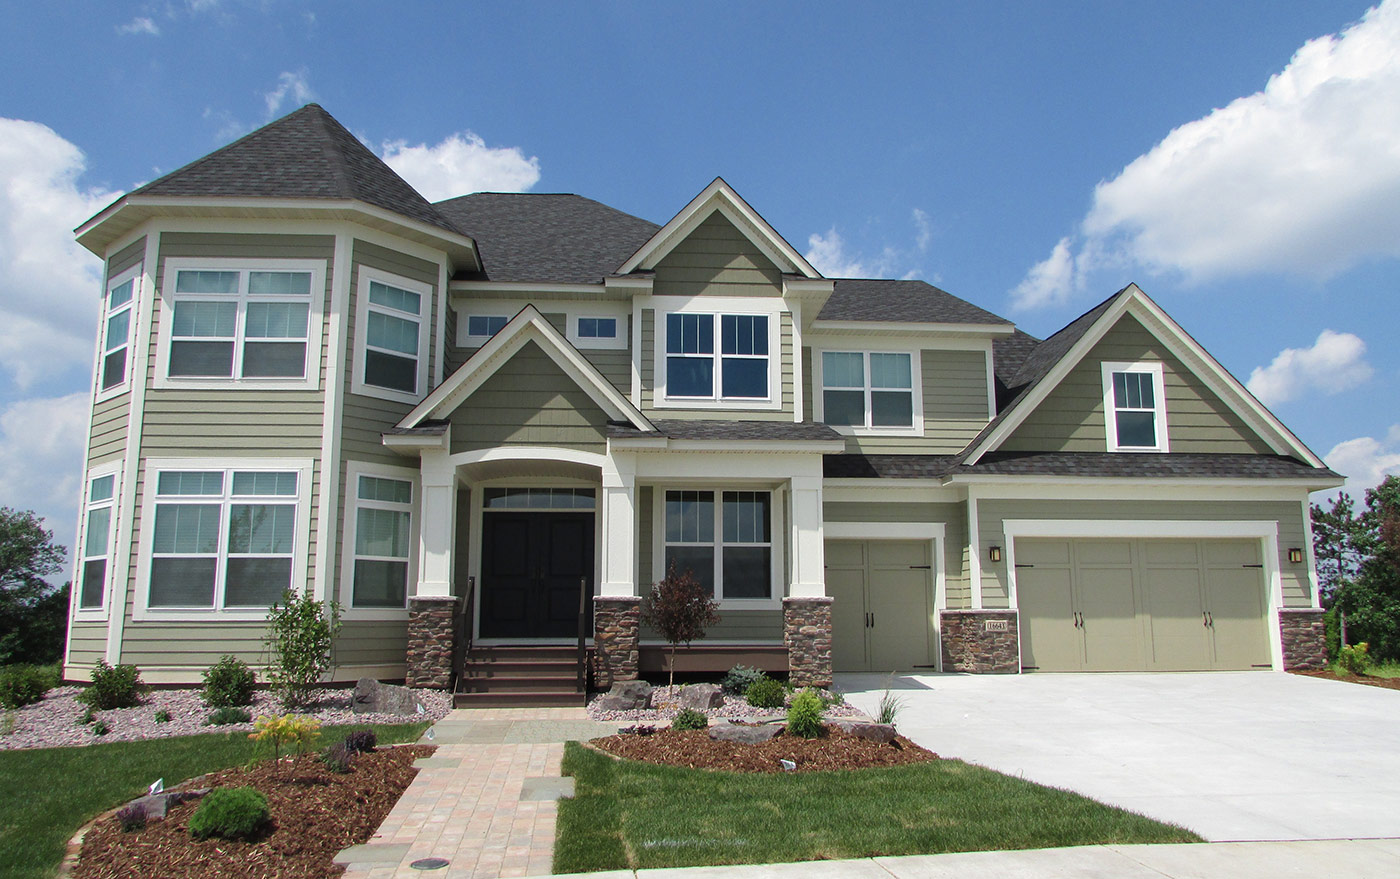 Custom Home Exteriors Custom Home Builders New Home Communities In Lakeville And Minneapolis Mn